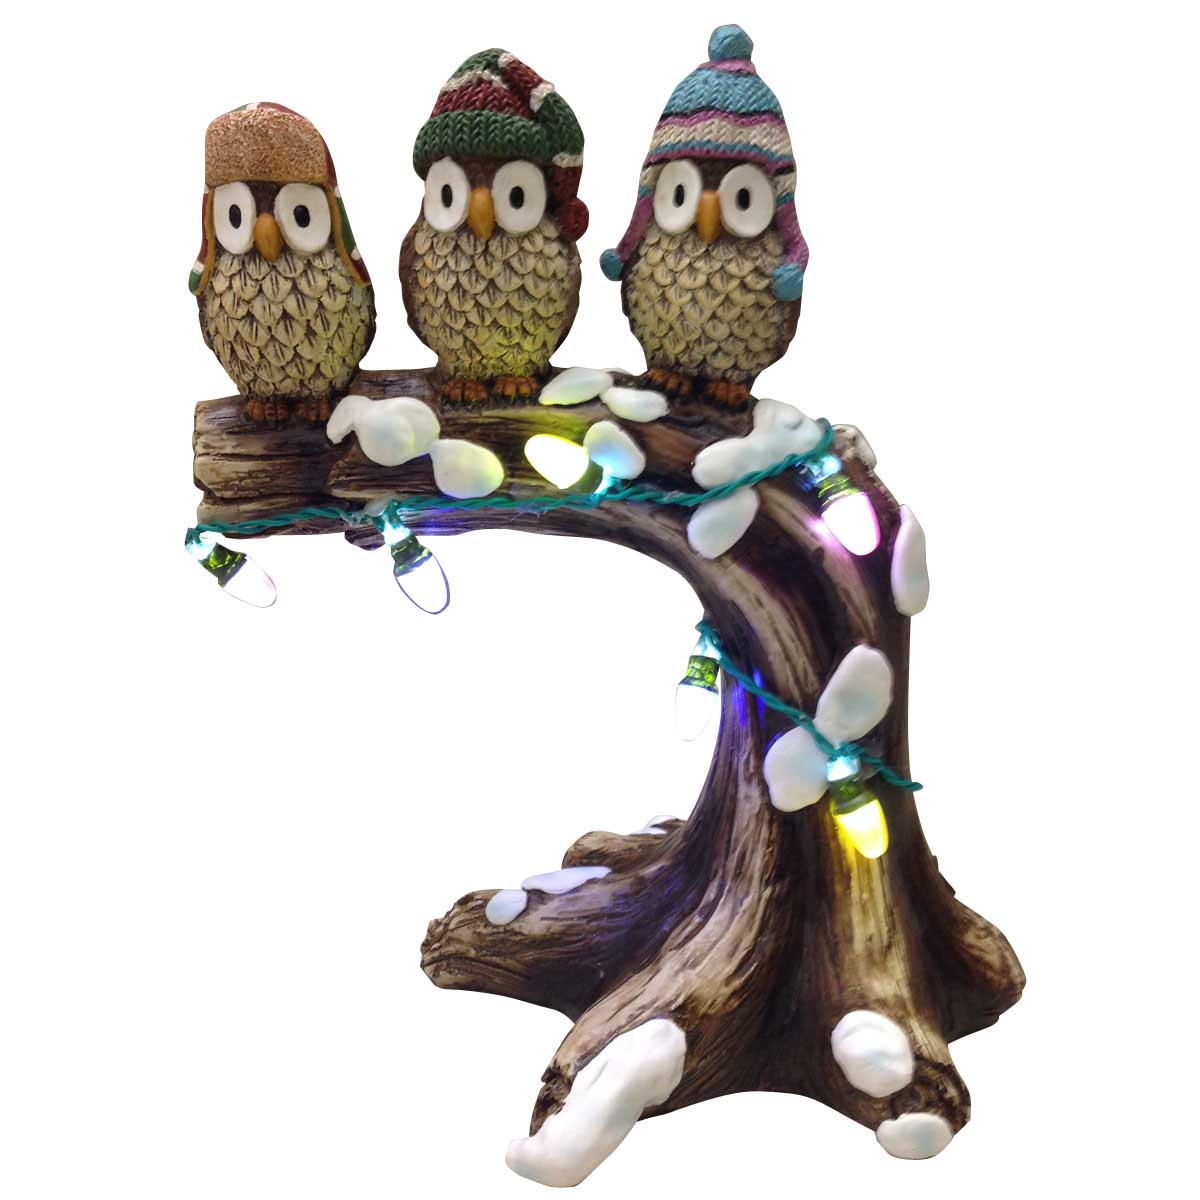 Design House 10.6 in. LED Owls on a Tree Branch Light-Up Lawn Holiday Christmas Decoration - 319715